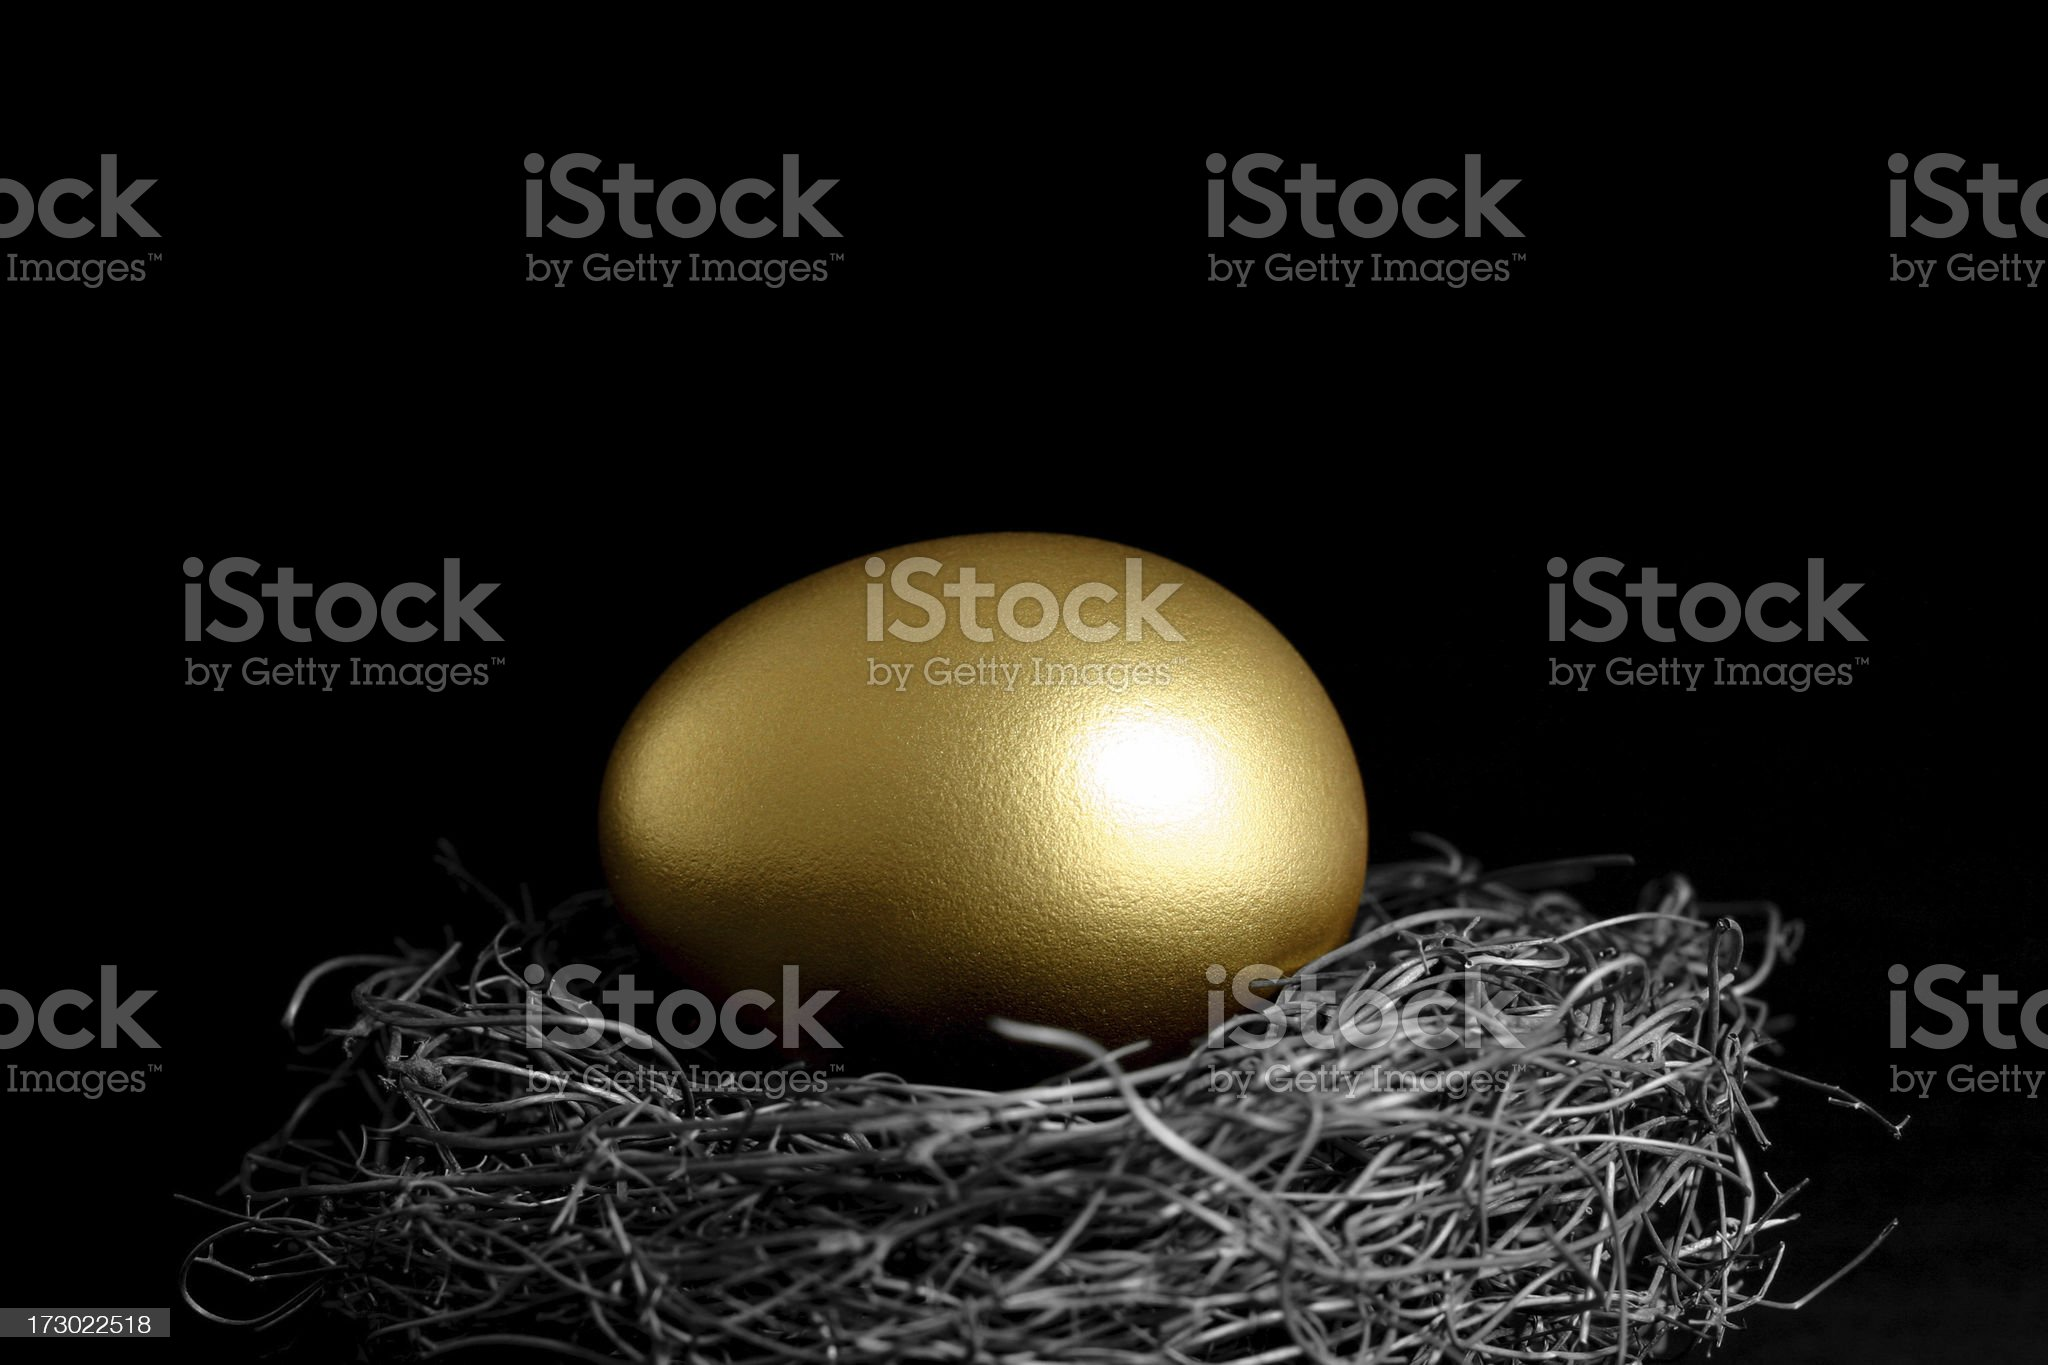 Golden Egg in a Nest on Black Background royalty-free stock photo